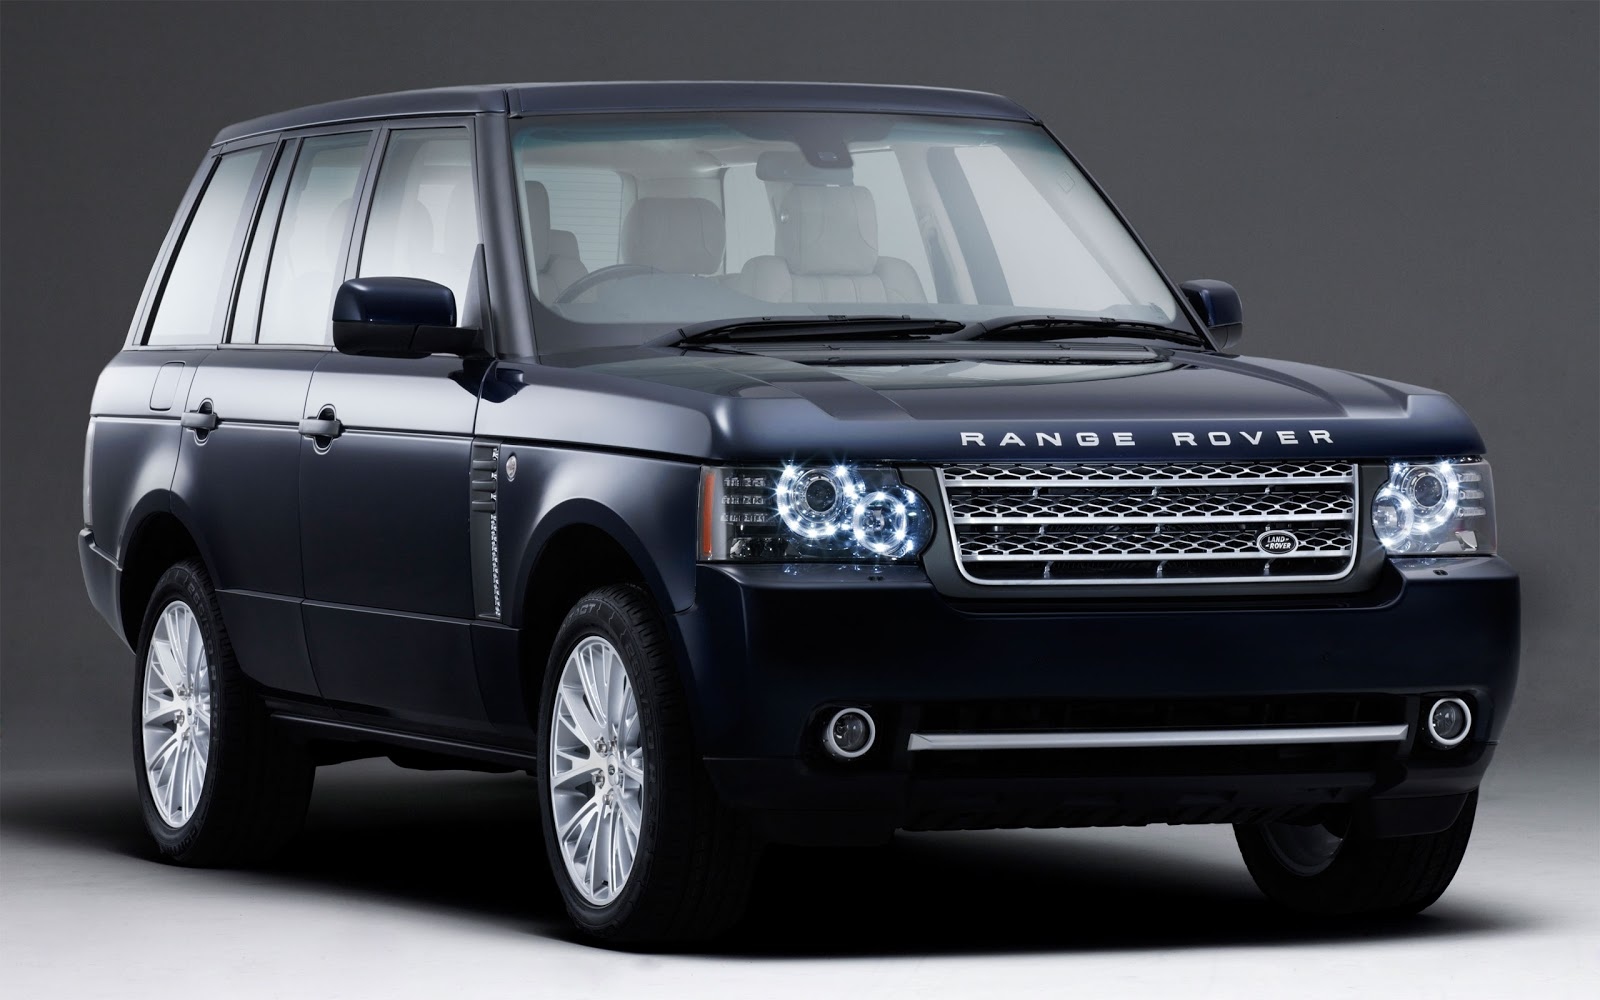 15 Range Rover HD Desktop Wallpapers